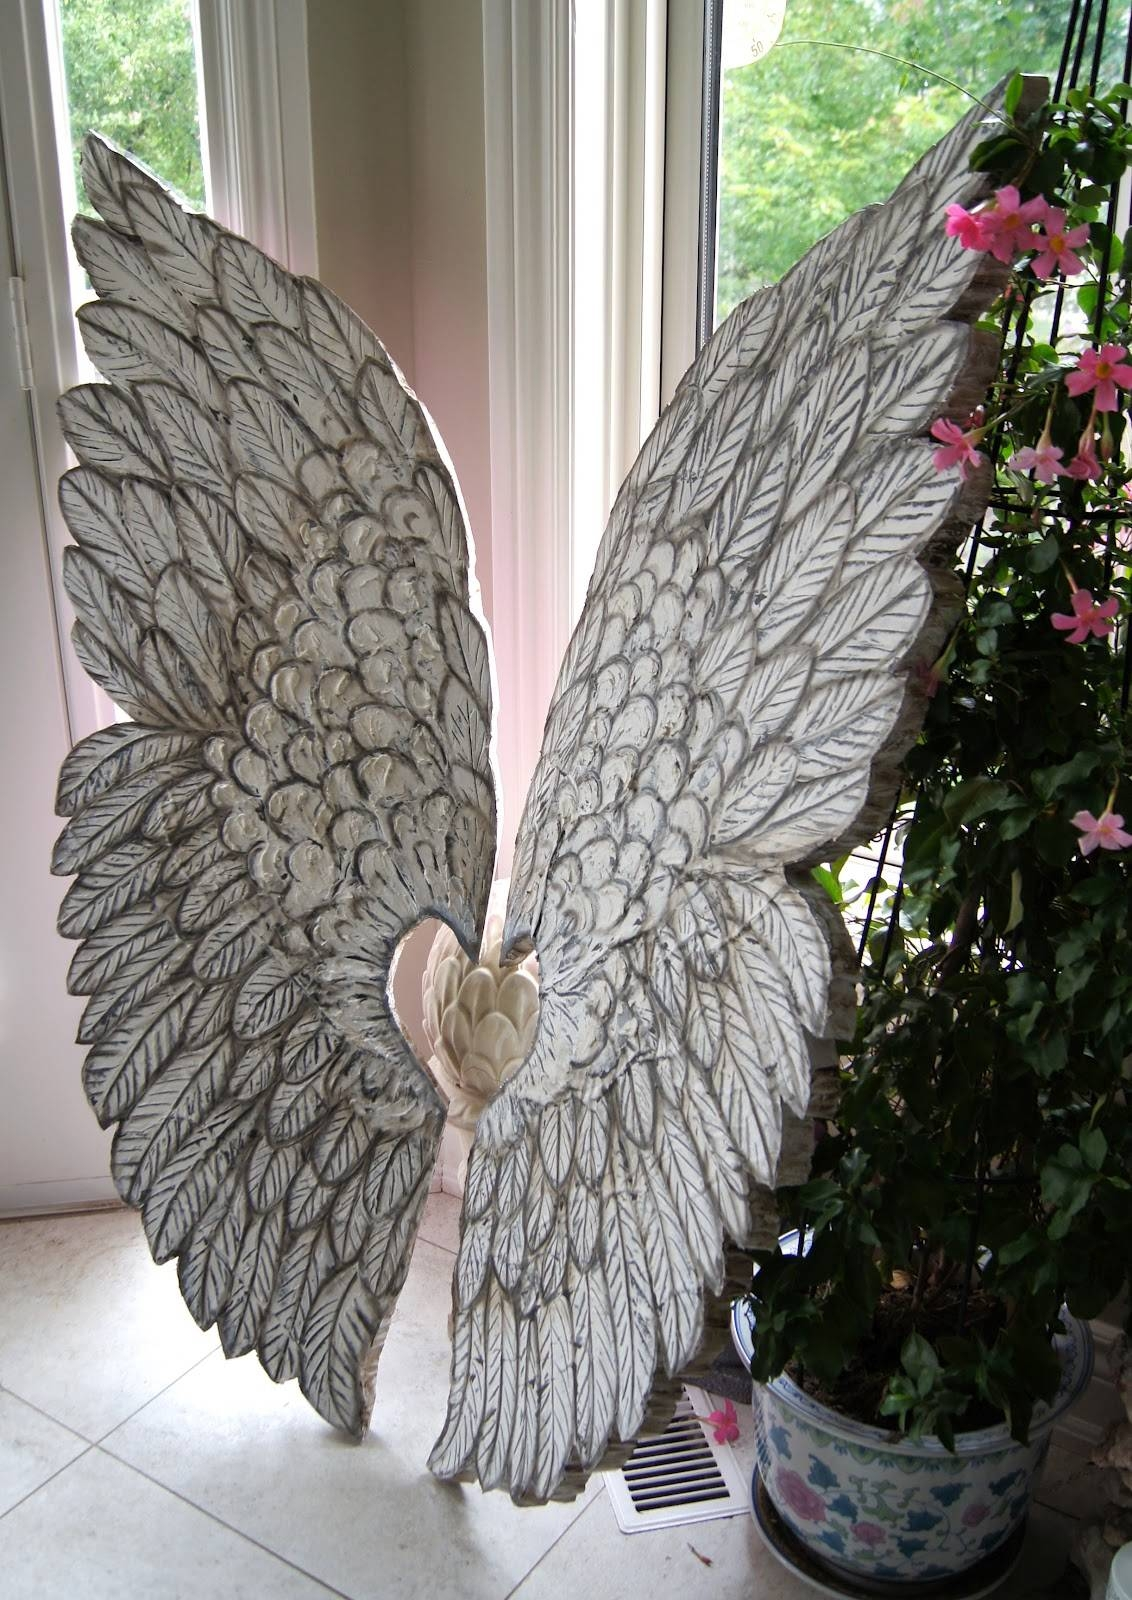 Angel Wings Wall Decor Awesome Projects Angel Wing Wall Decor Inside Latest Angel Wings Wall Art (View 8 of 20)